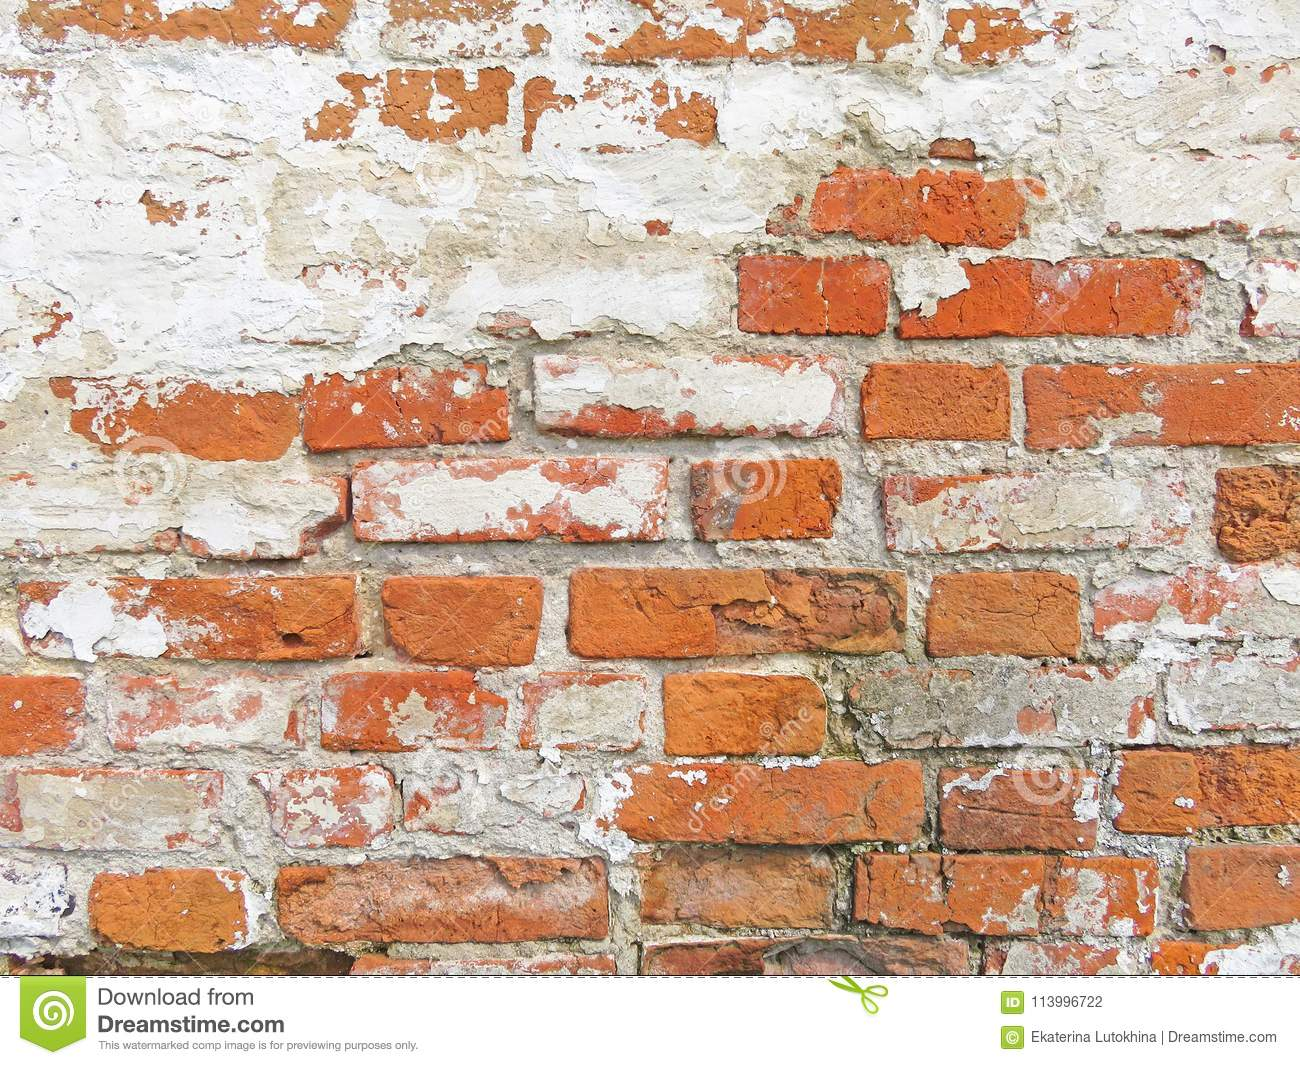 Red, Terracotta and White Brick Background. Old Wall of Red Bricks and White Brayed and Cracked Old Paint.